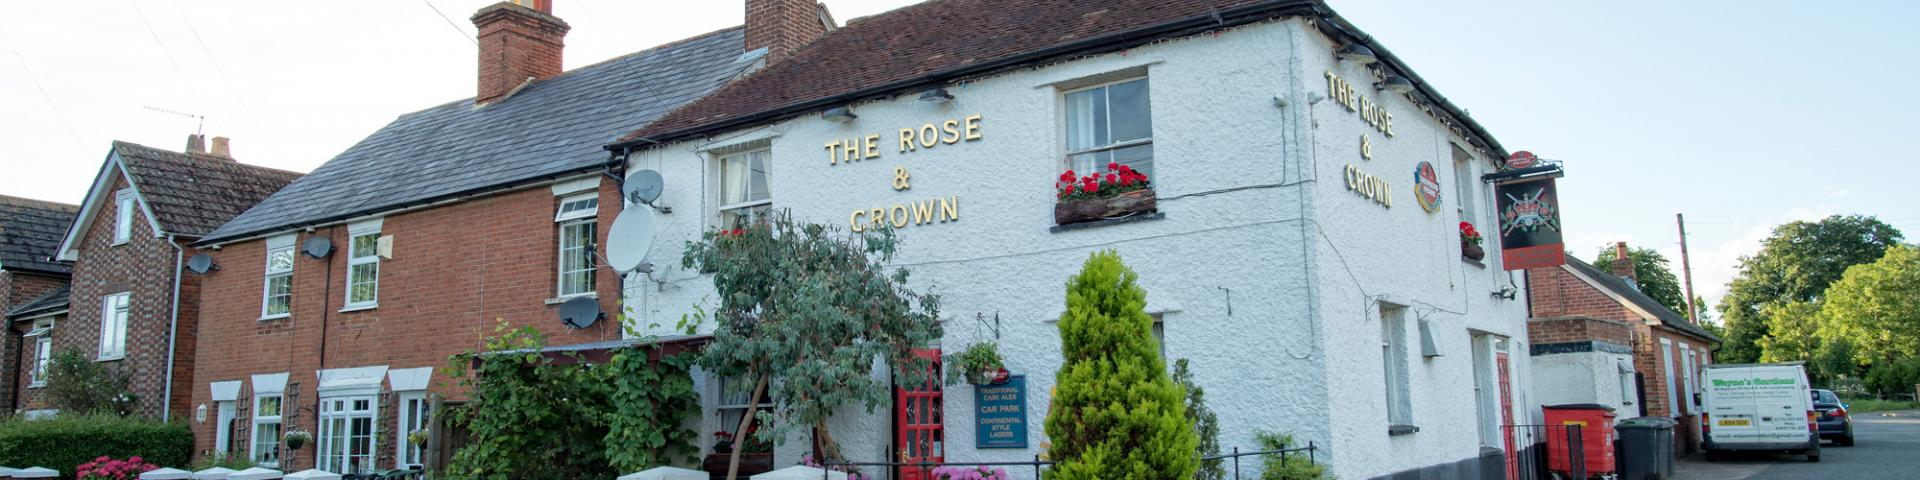 Rose & Crown, Hadlow